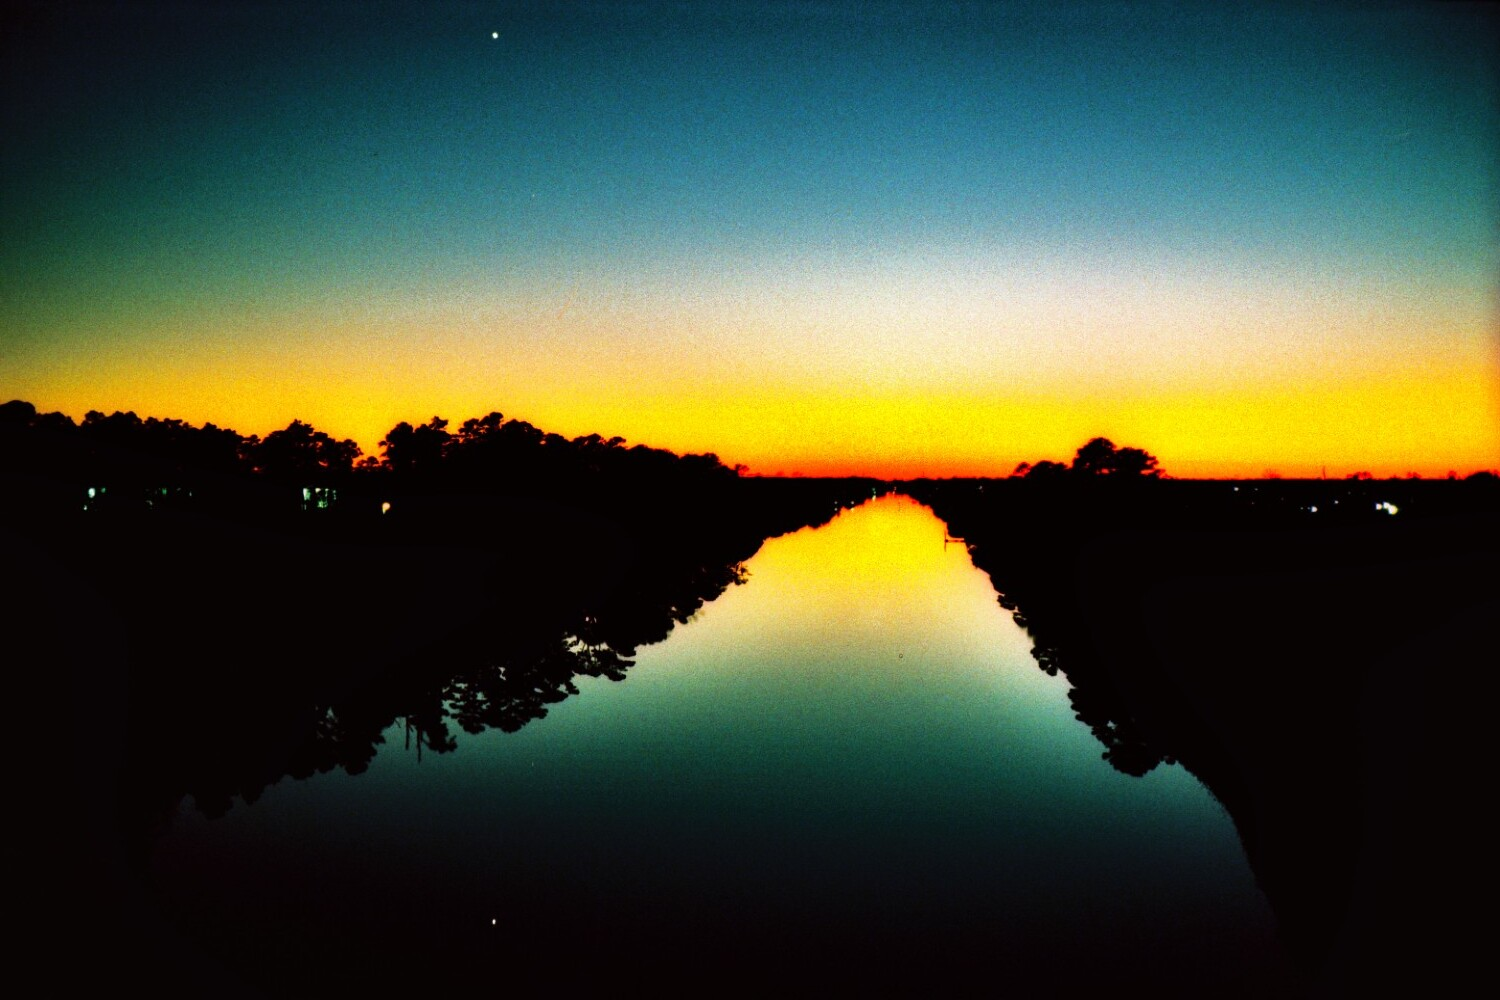 Venus at Sunset above her Reflection in the Atlantic Intracoastal Waterway on Flickr